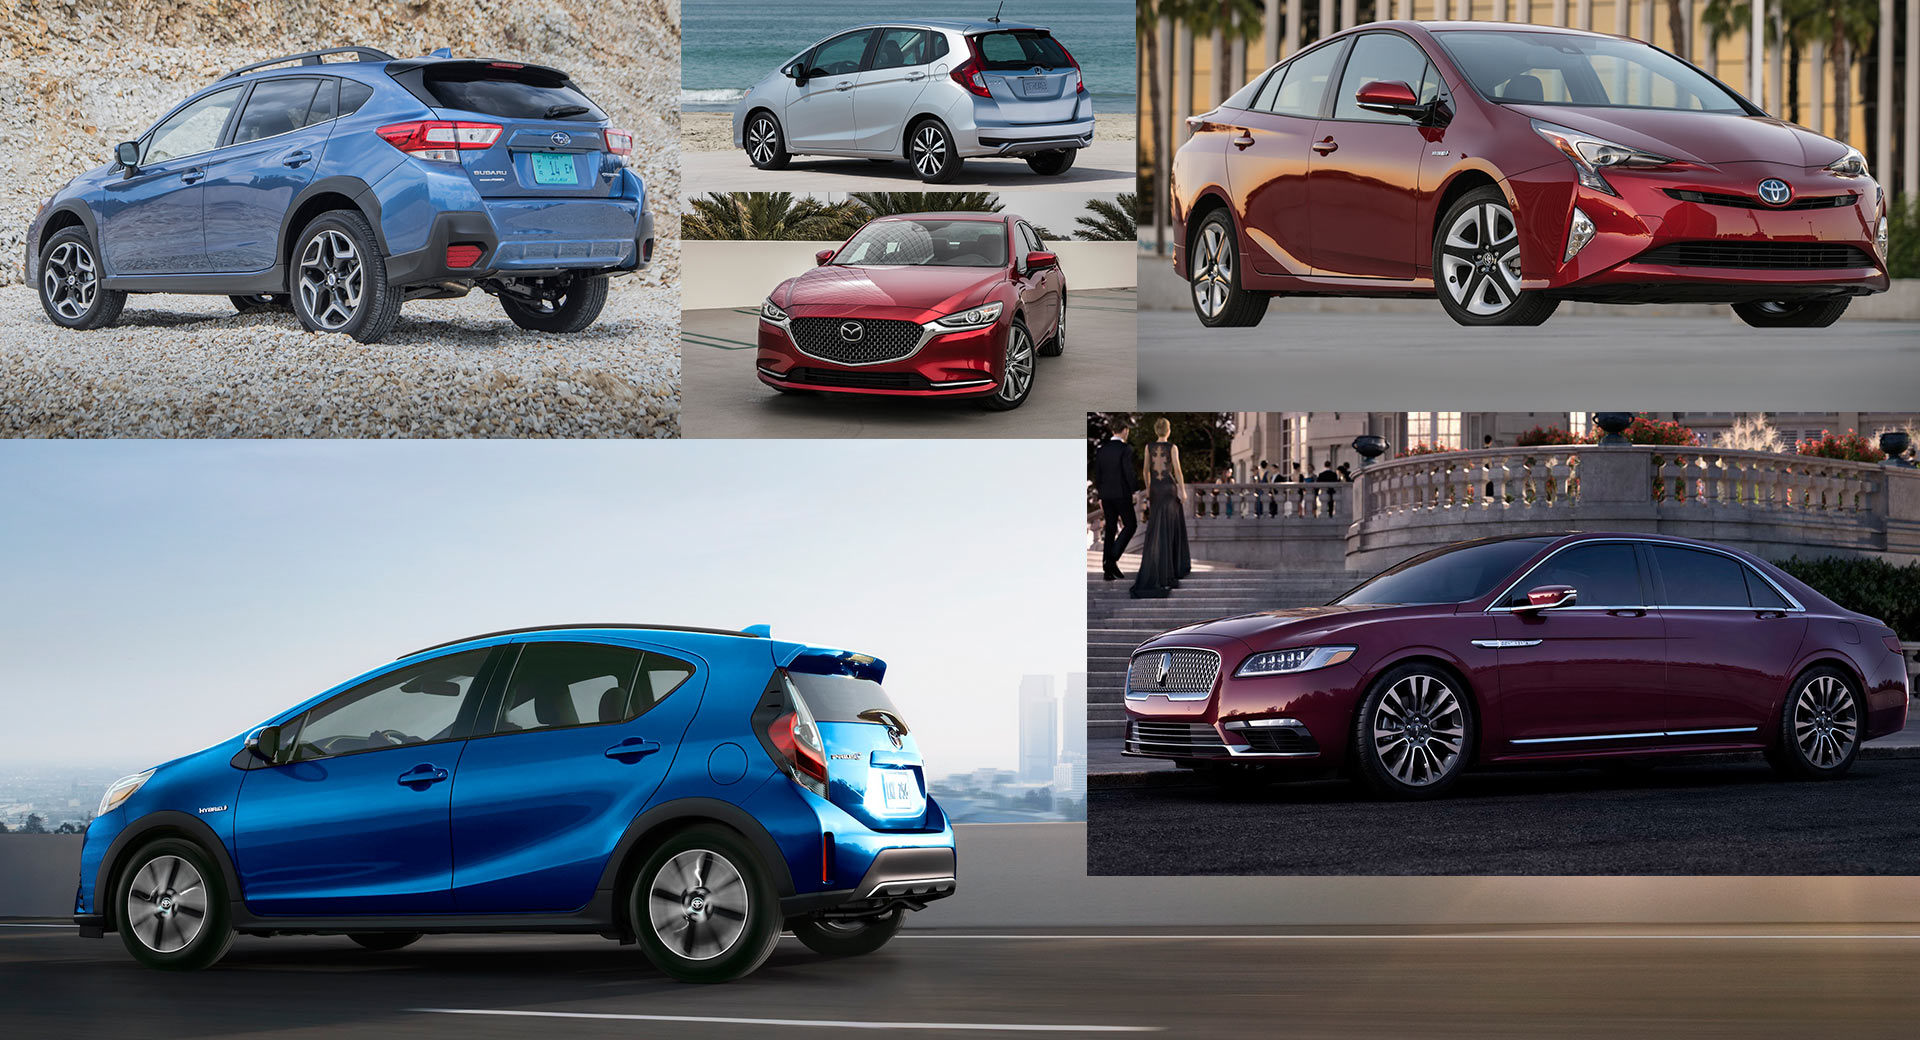 The 10 Most Reliable Cars For 2019 According To CR's Annual